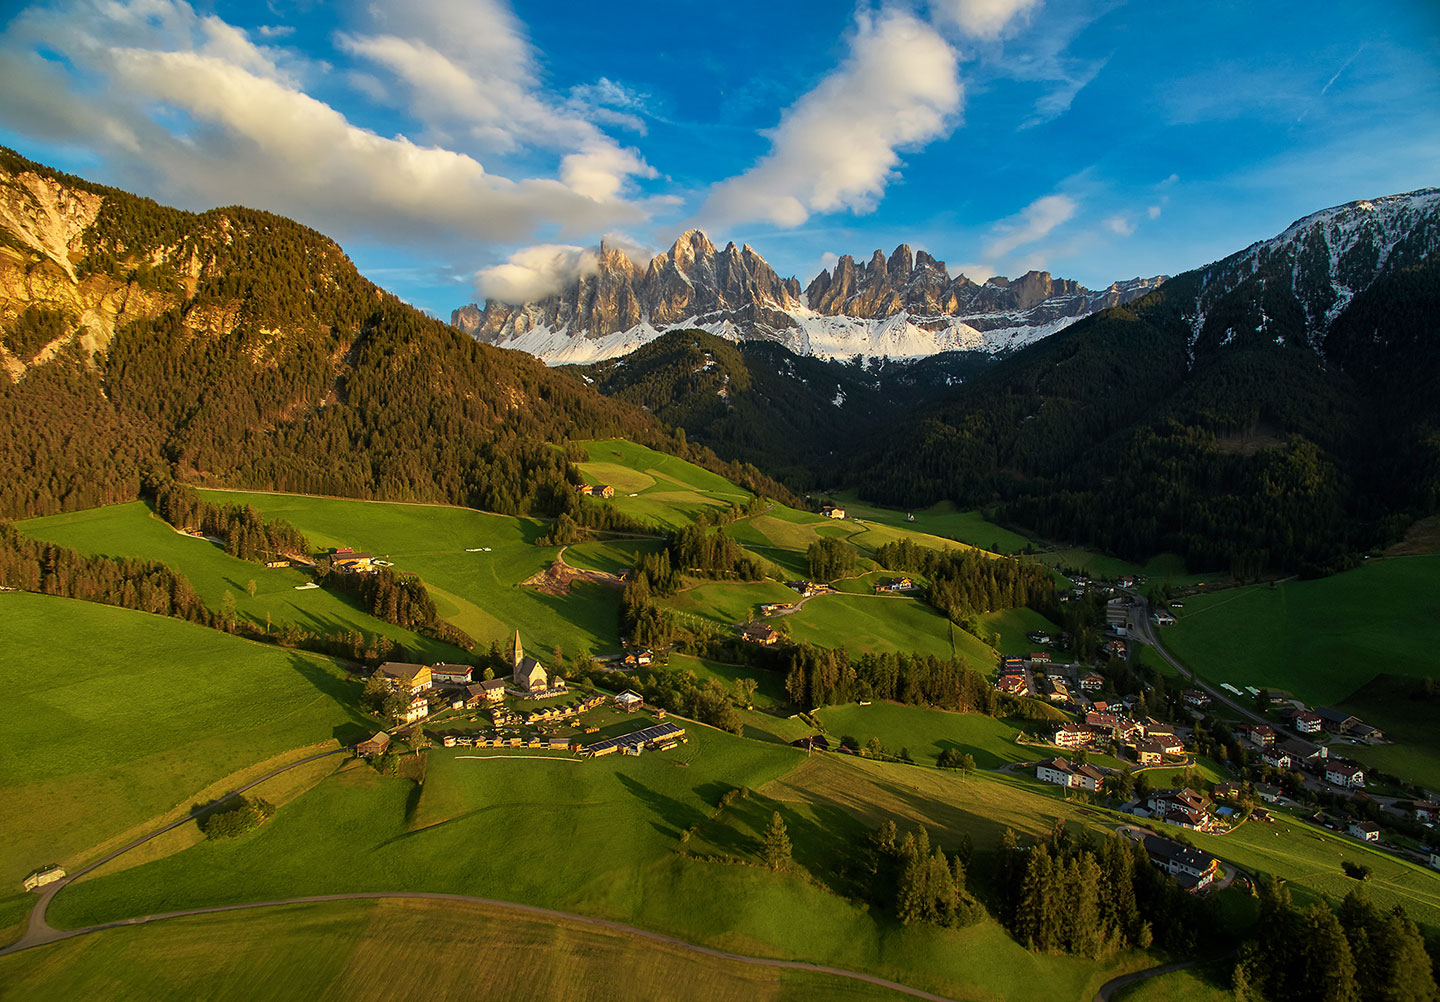 (A sunset and moonrise over the stunning Dolomites in Val di Funes, Italy)